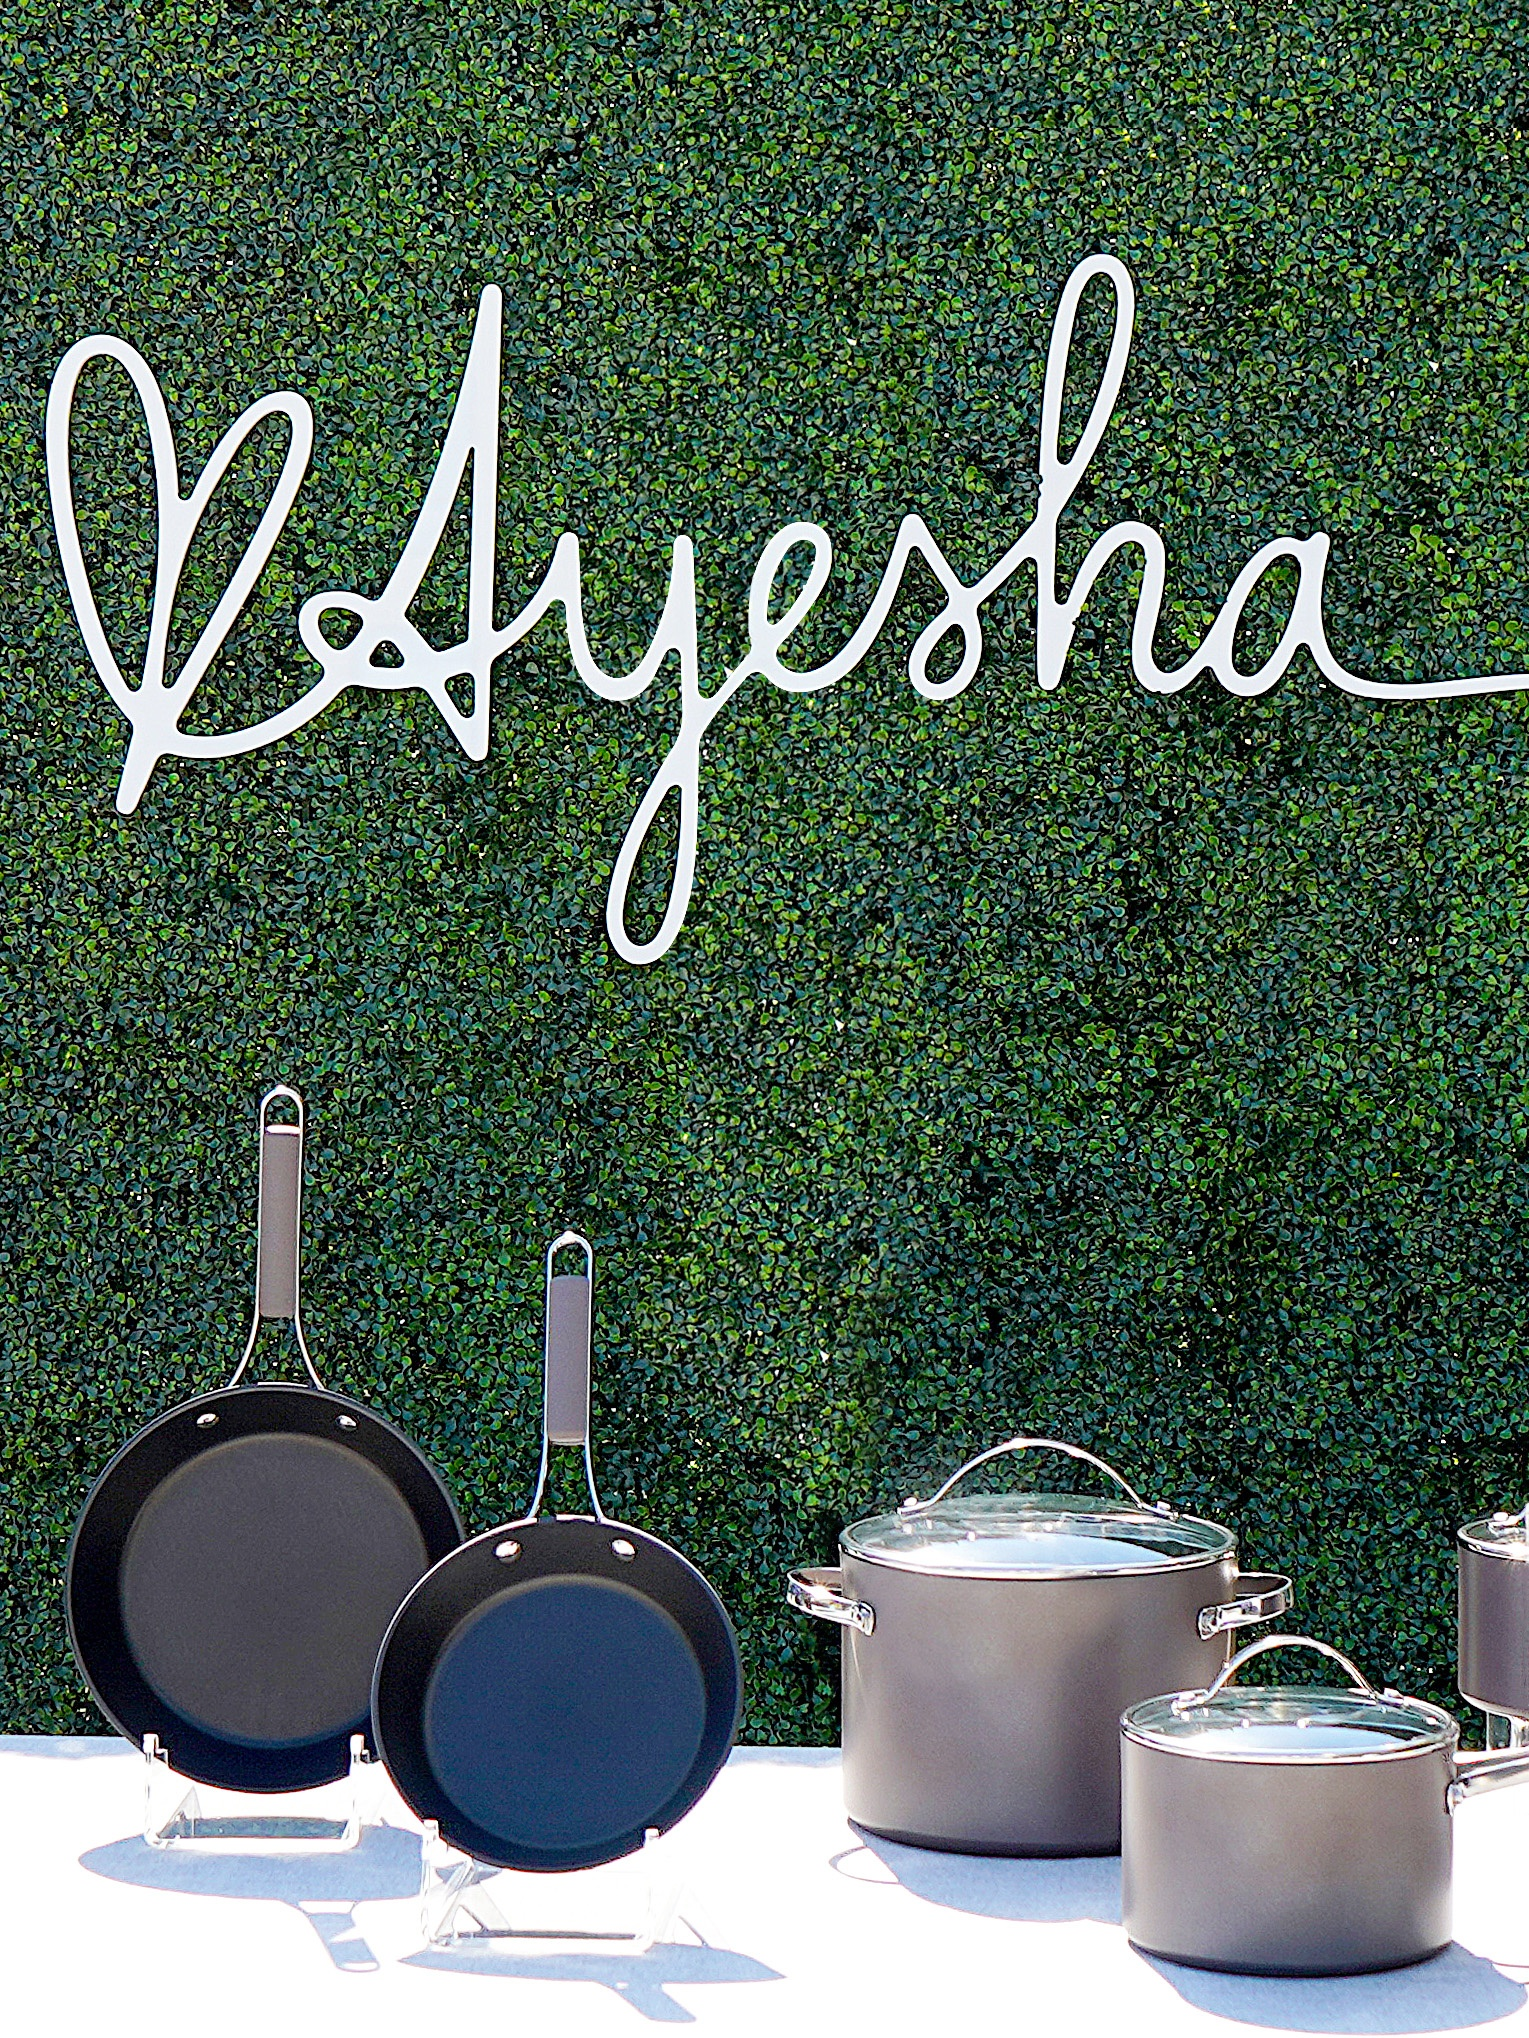 Ayesha Curry Celebrates Her New Ayesha™ Curry Cookware and Kitchenware Collections at Kick Off Party In San Francisco